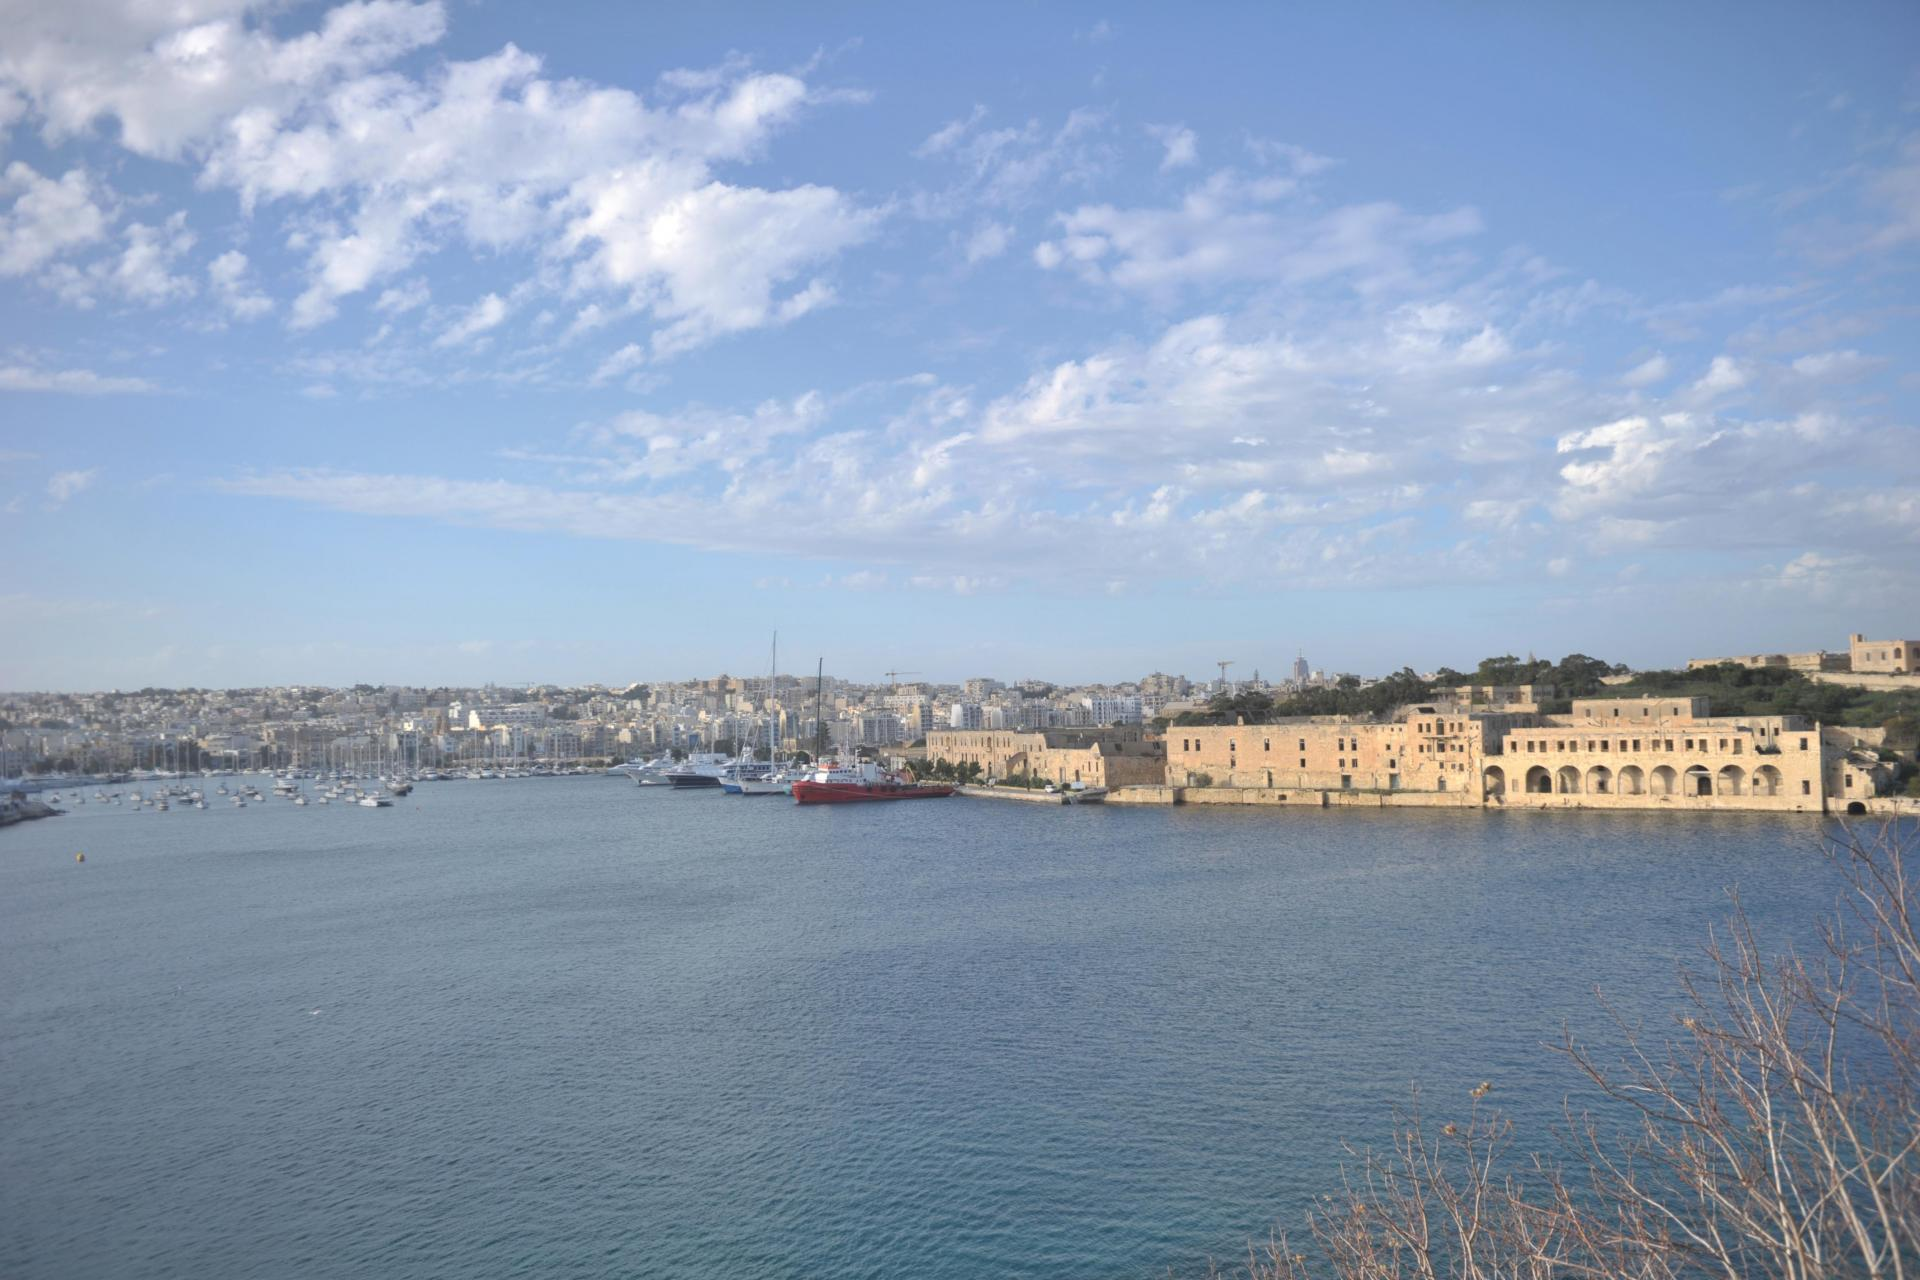 Manoel Island: NGO's conflict of interest plea accepted by tribunal